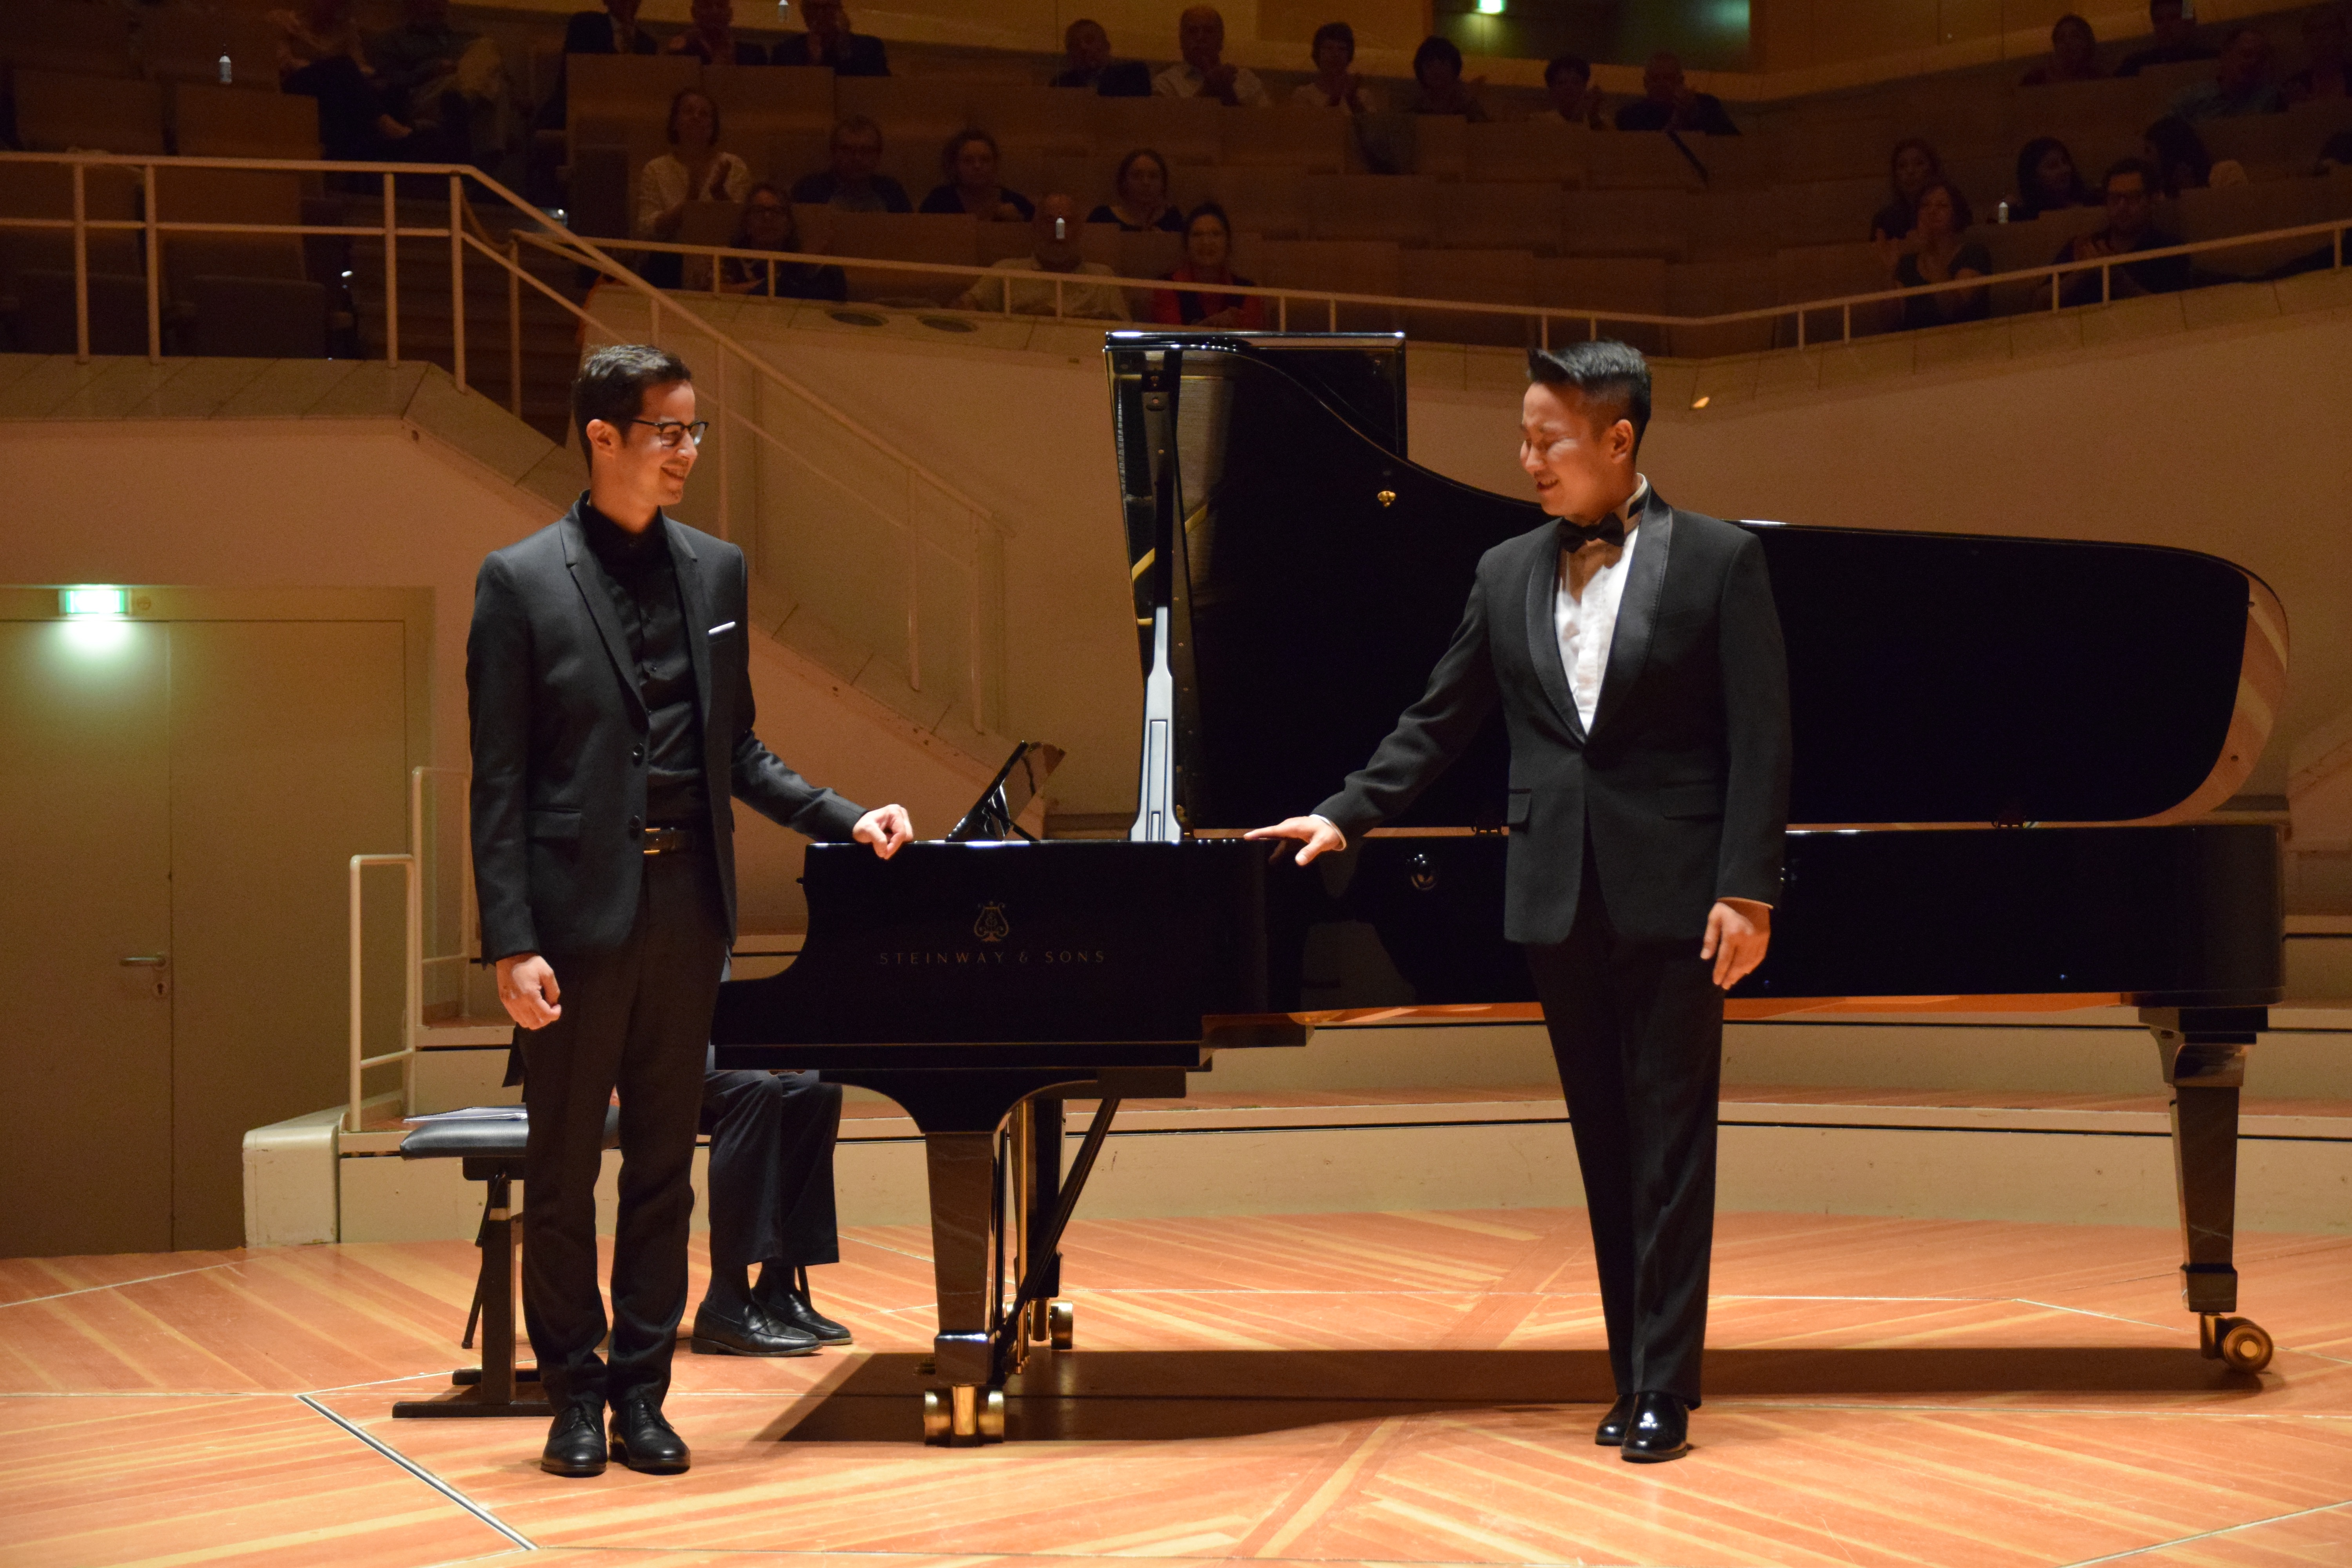 berliner music competition 38